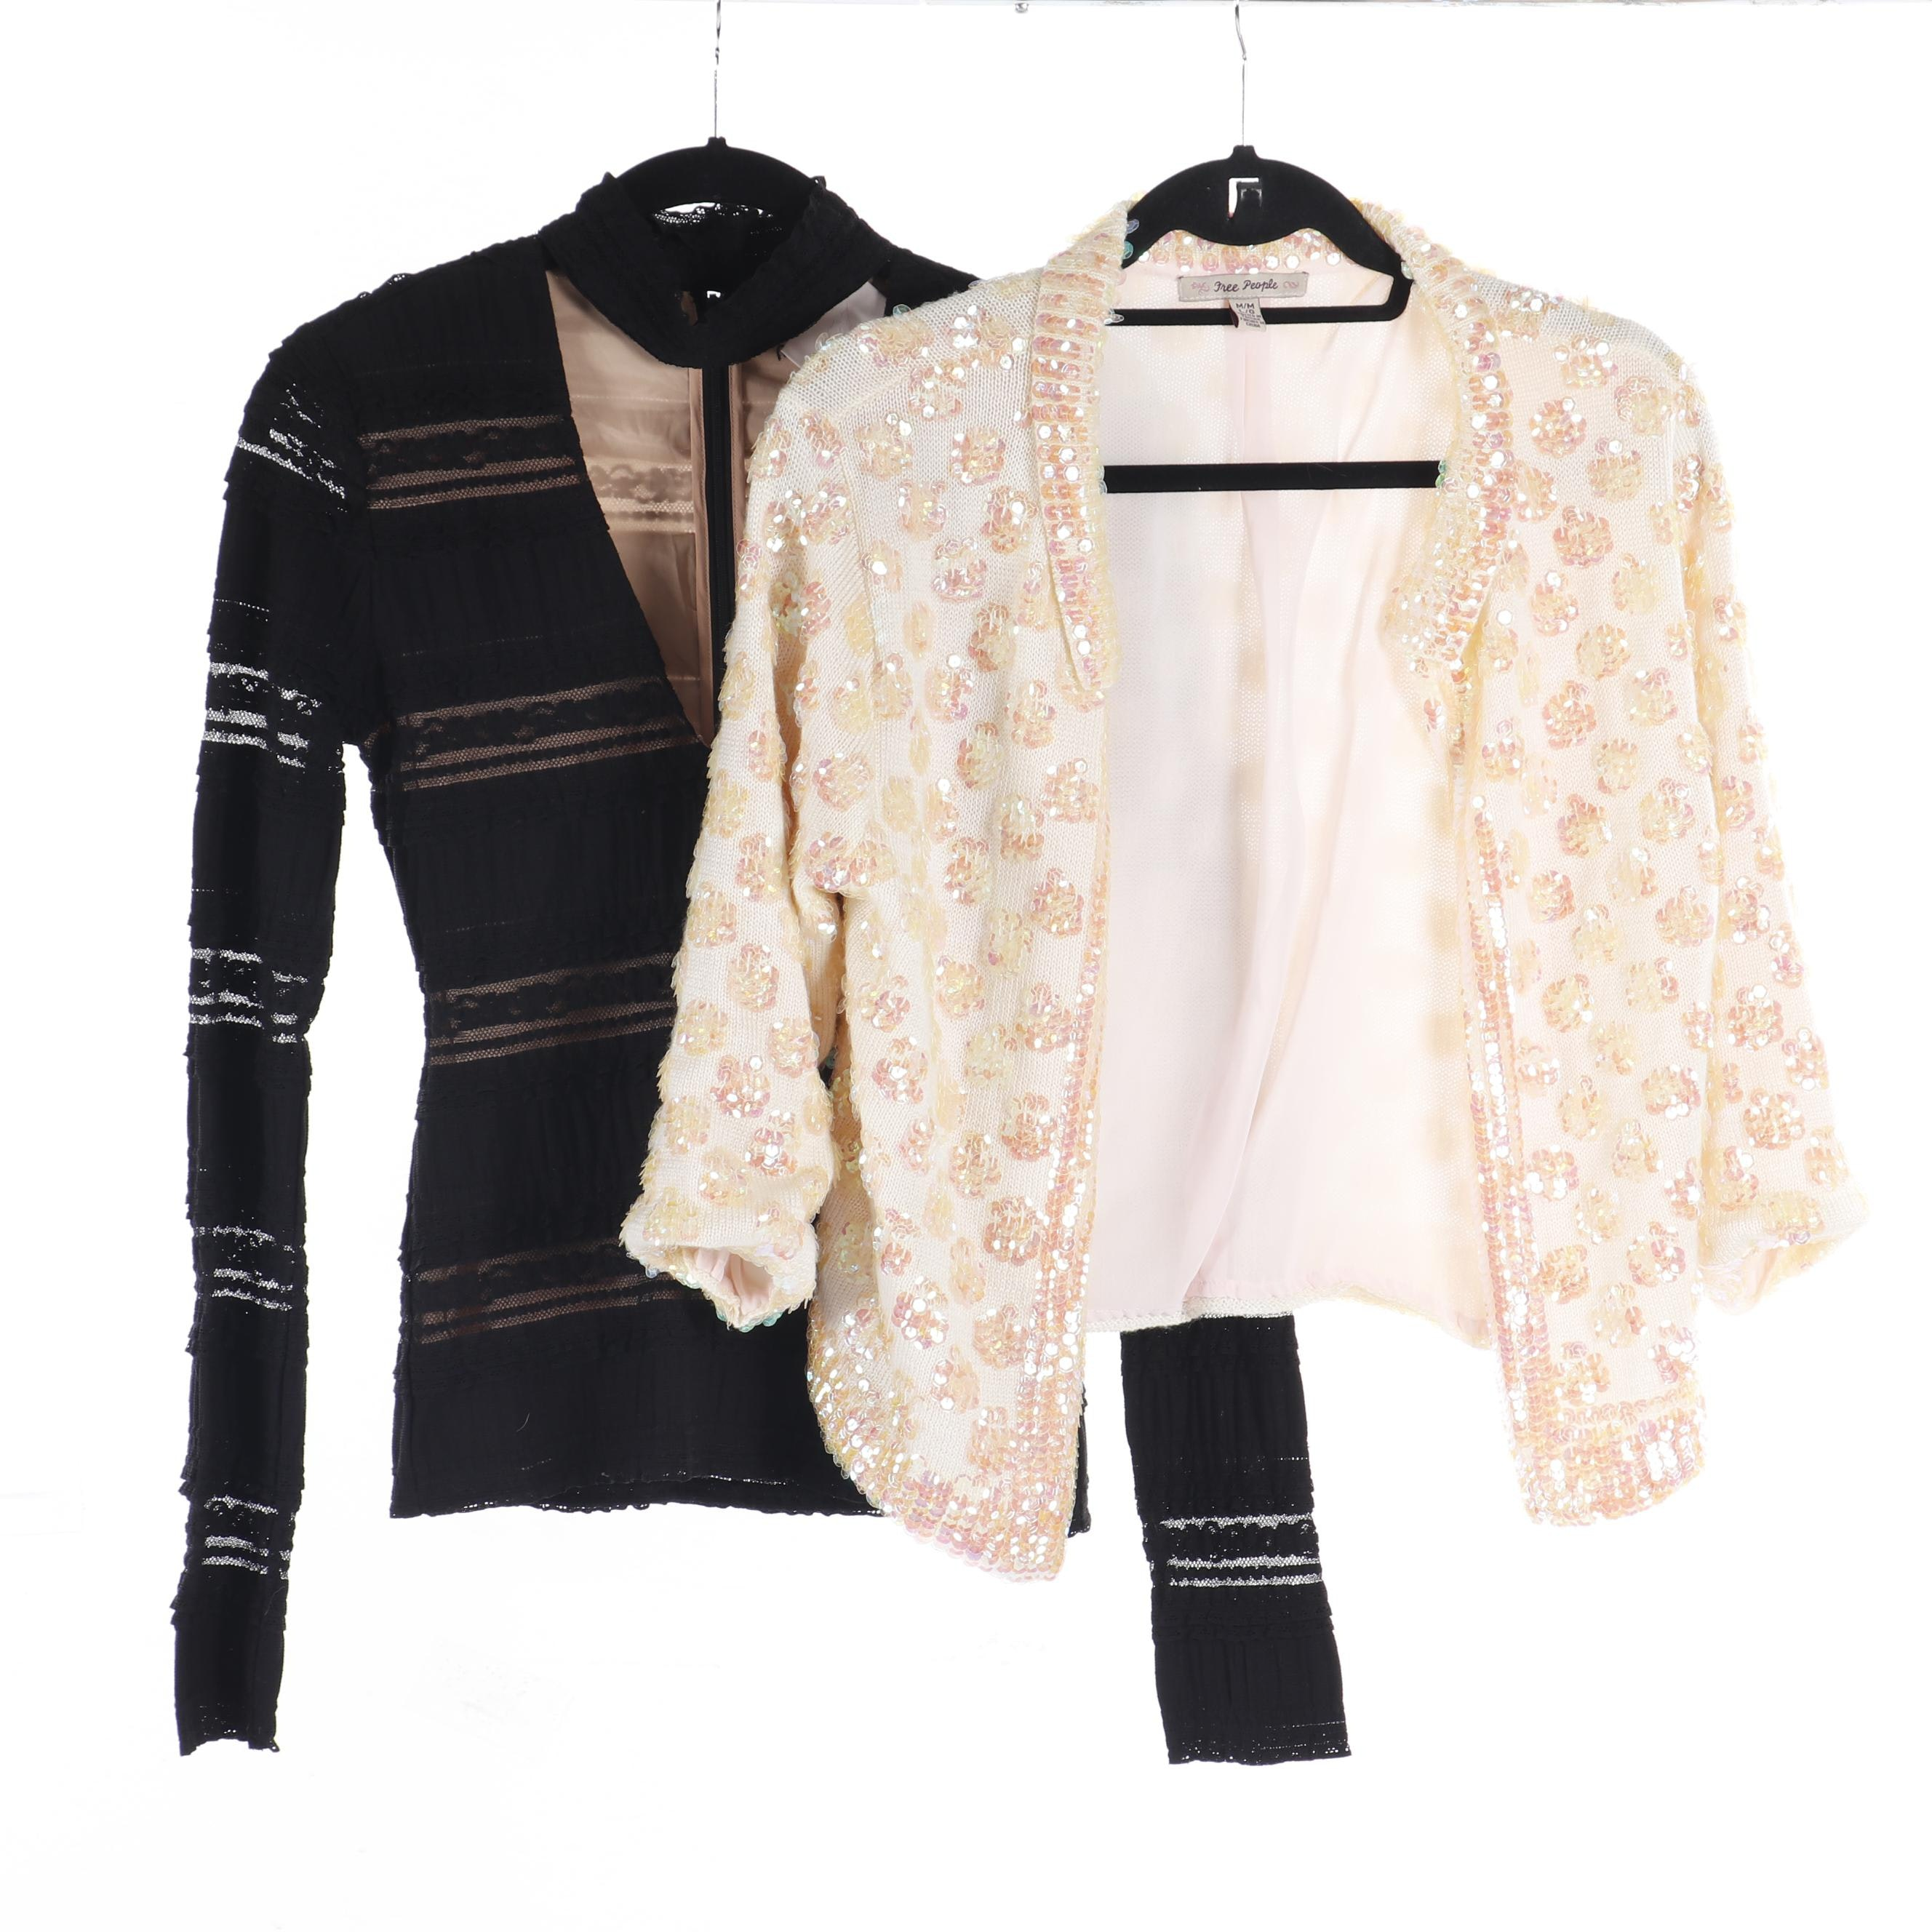 Cinq a Sept Blouse and Free People Sequin Sweater